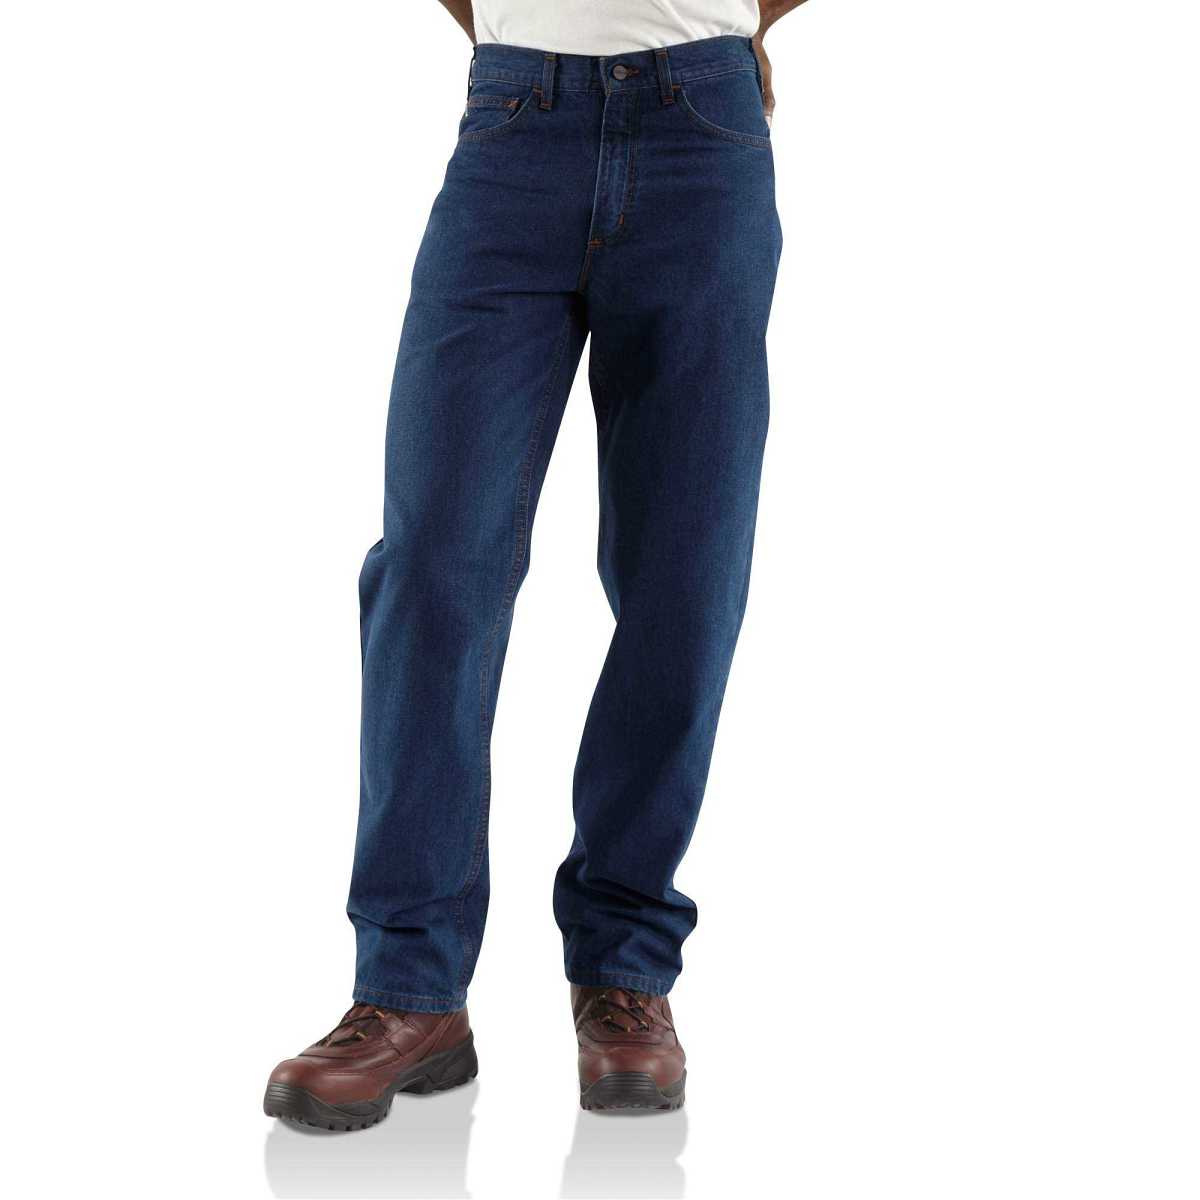 Carhartt Flame-Resistant Relaxed Fit Jean/Straight Leg Denim USA - GOOFASH - Mens JEANS